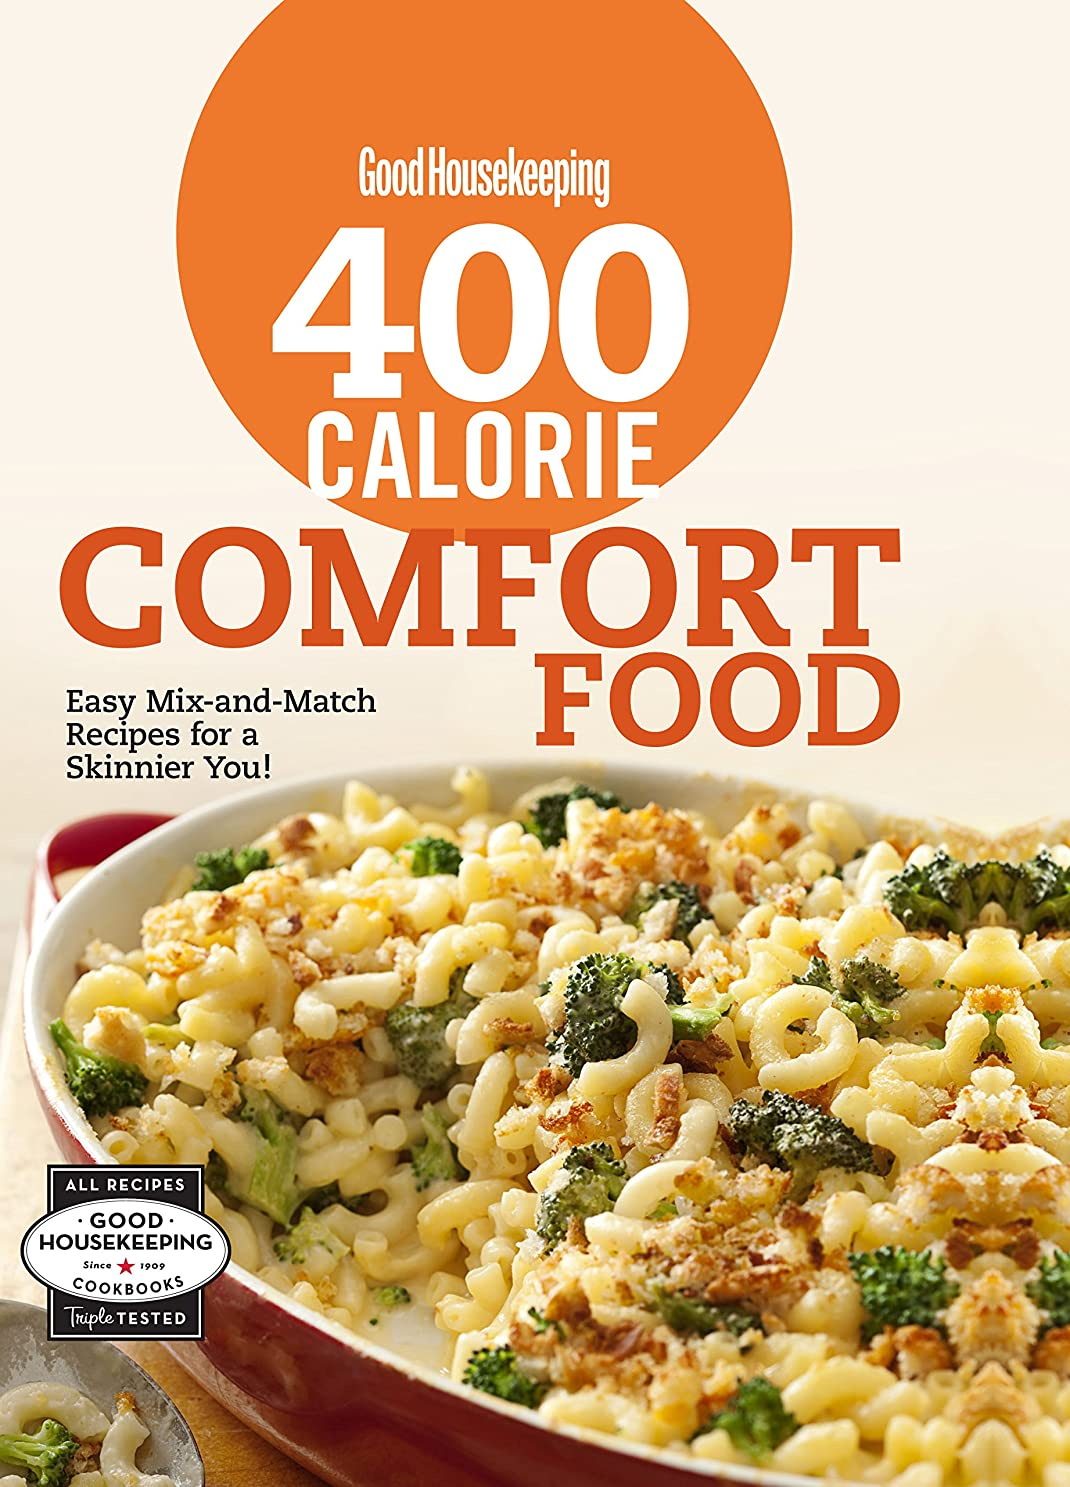 Good Housekeeping 400 Calorie Comfort Food: Easy Mix-and-Match Recipes for a Skinnier You! (English Edition)